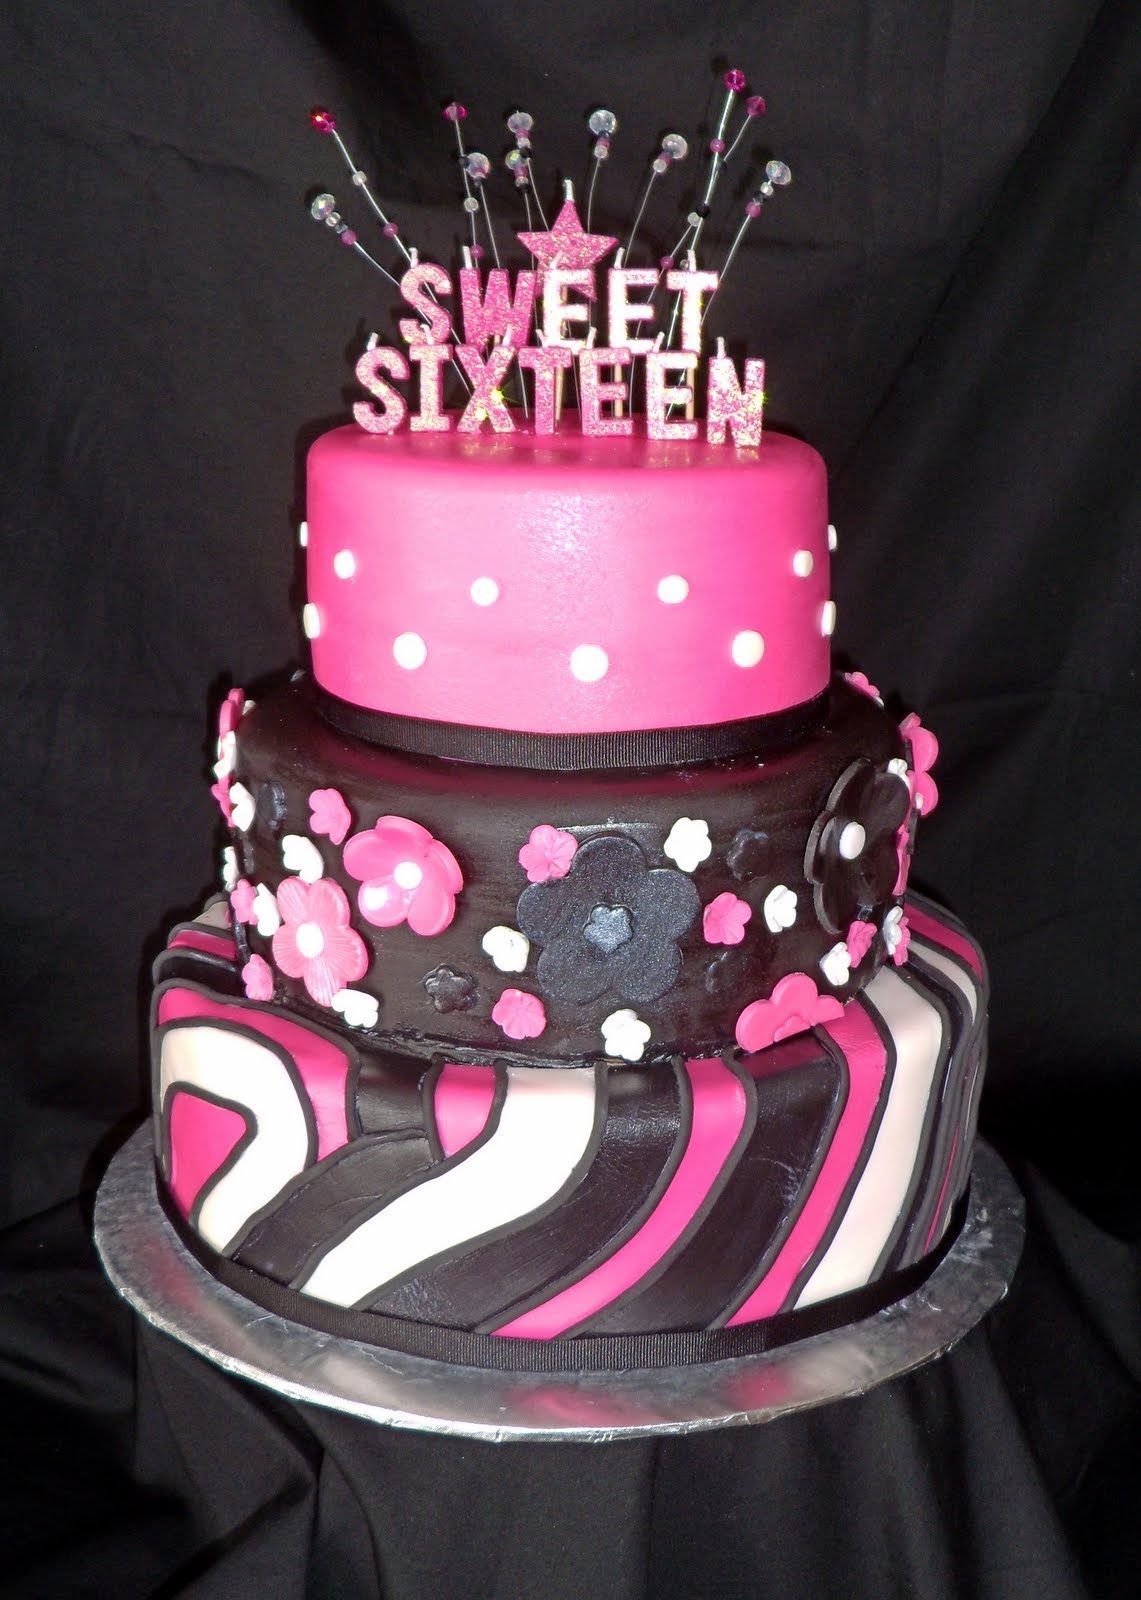 Superb 11 Happy Birthday Sweet 16 Cakes Photo Happy Sweet 16 Birthday Personalised Birthday Cards Veneteletsinfo